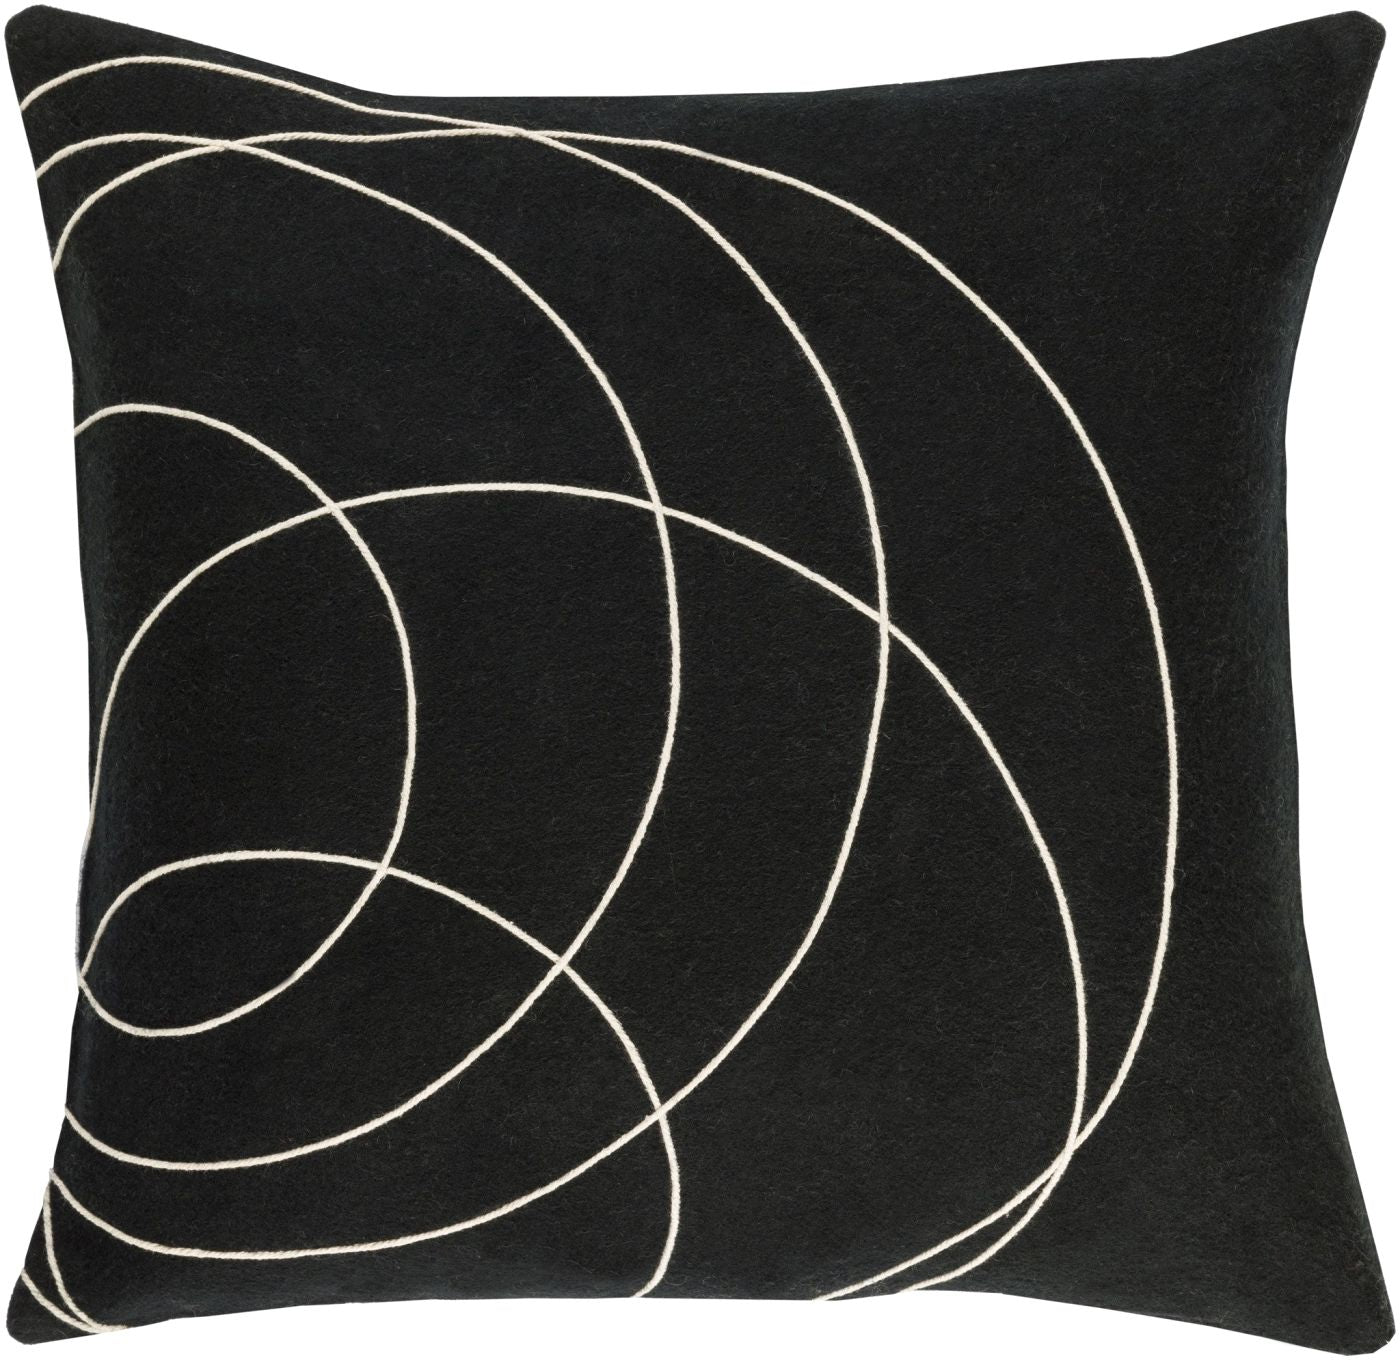 Plain Black Throw Pillow : Surya Solid Bold Throw Pillow Black, Neutral SB036-1319D. Only $49.80 at Contemporary Furniture ...